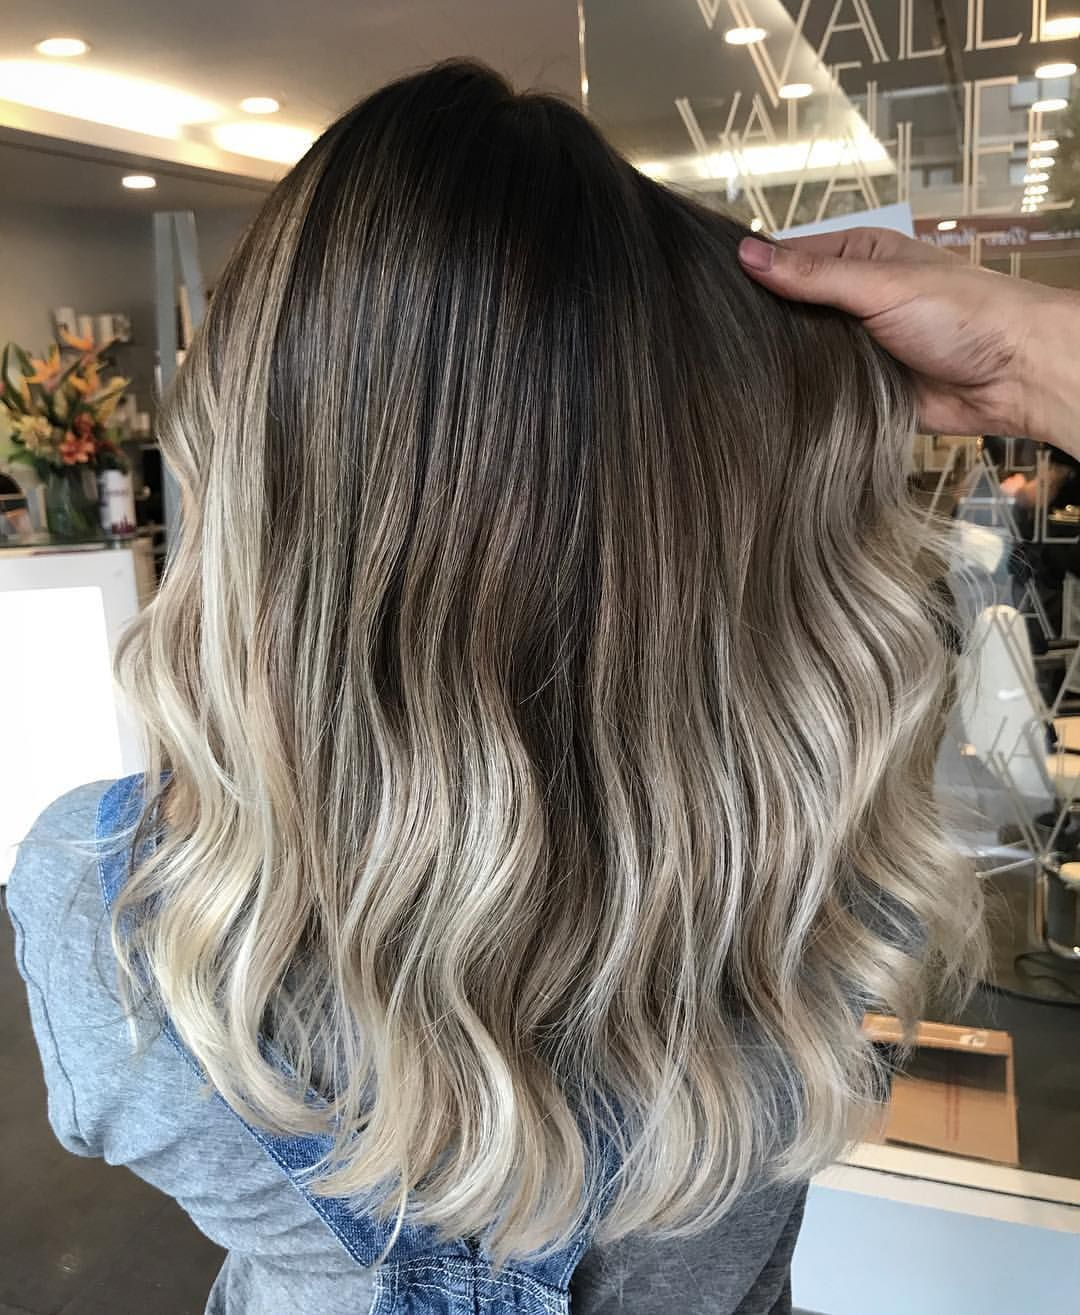 353 Likes, 13 Comments New York Balayage Artist (murat